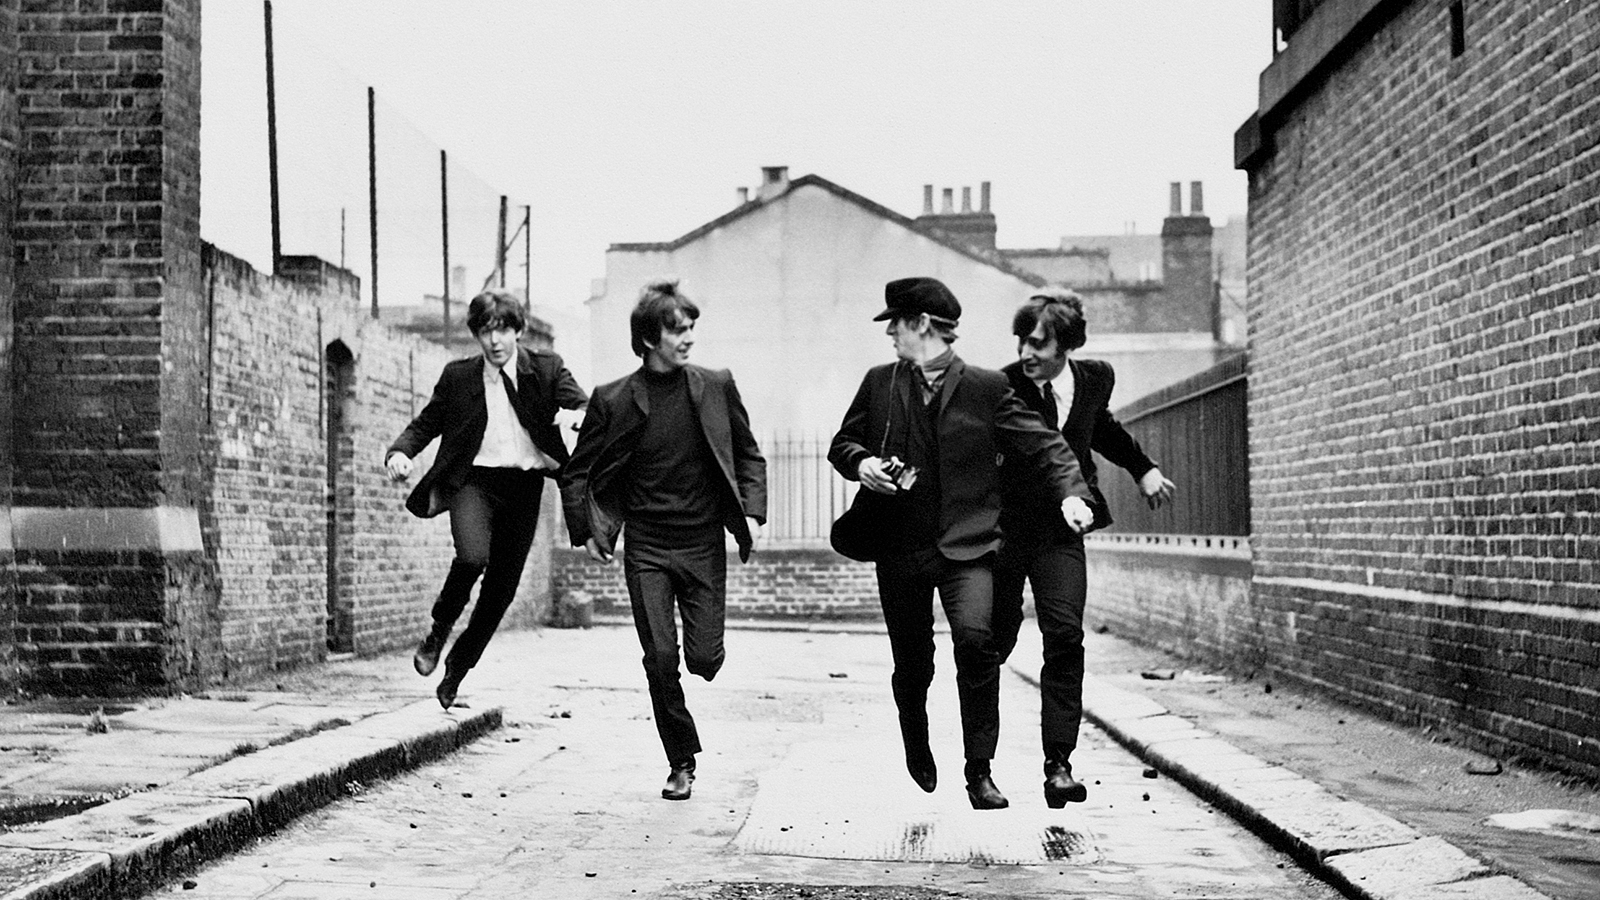 Hard Day's Night The Beatles movie | Вечер трудного дня